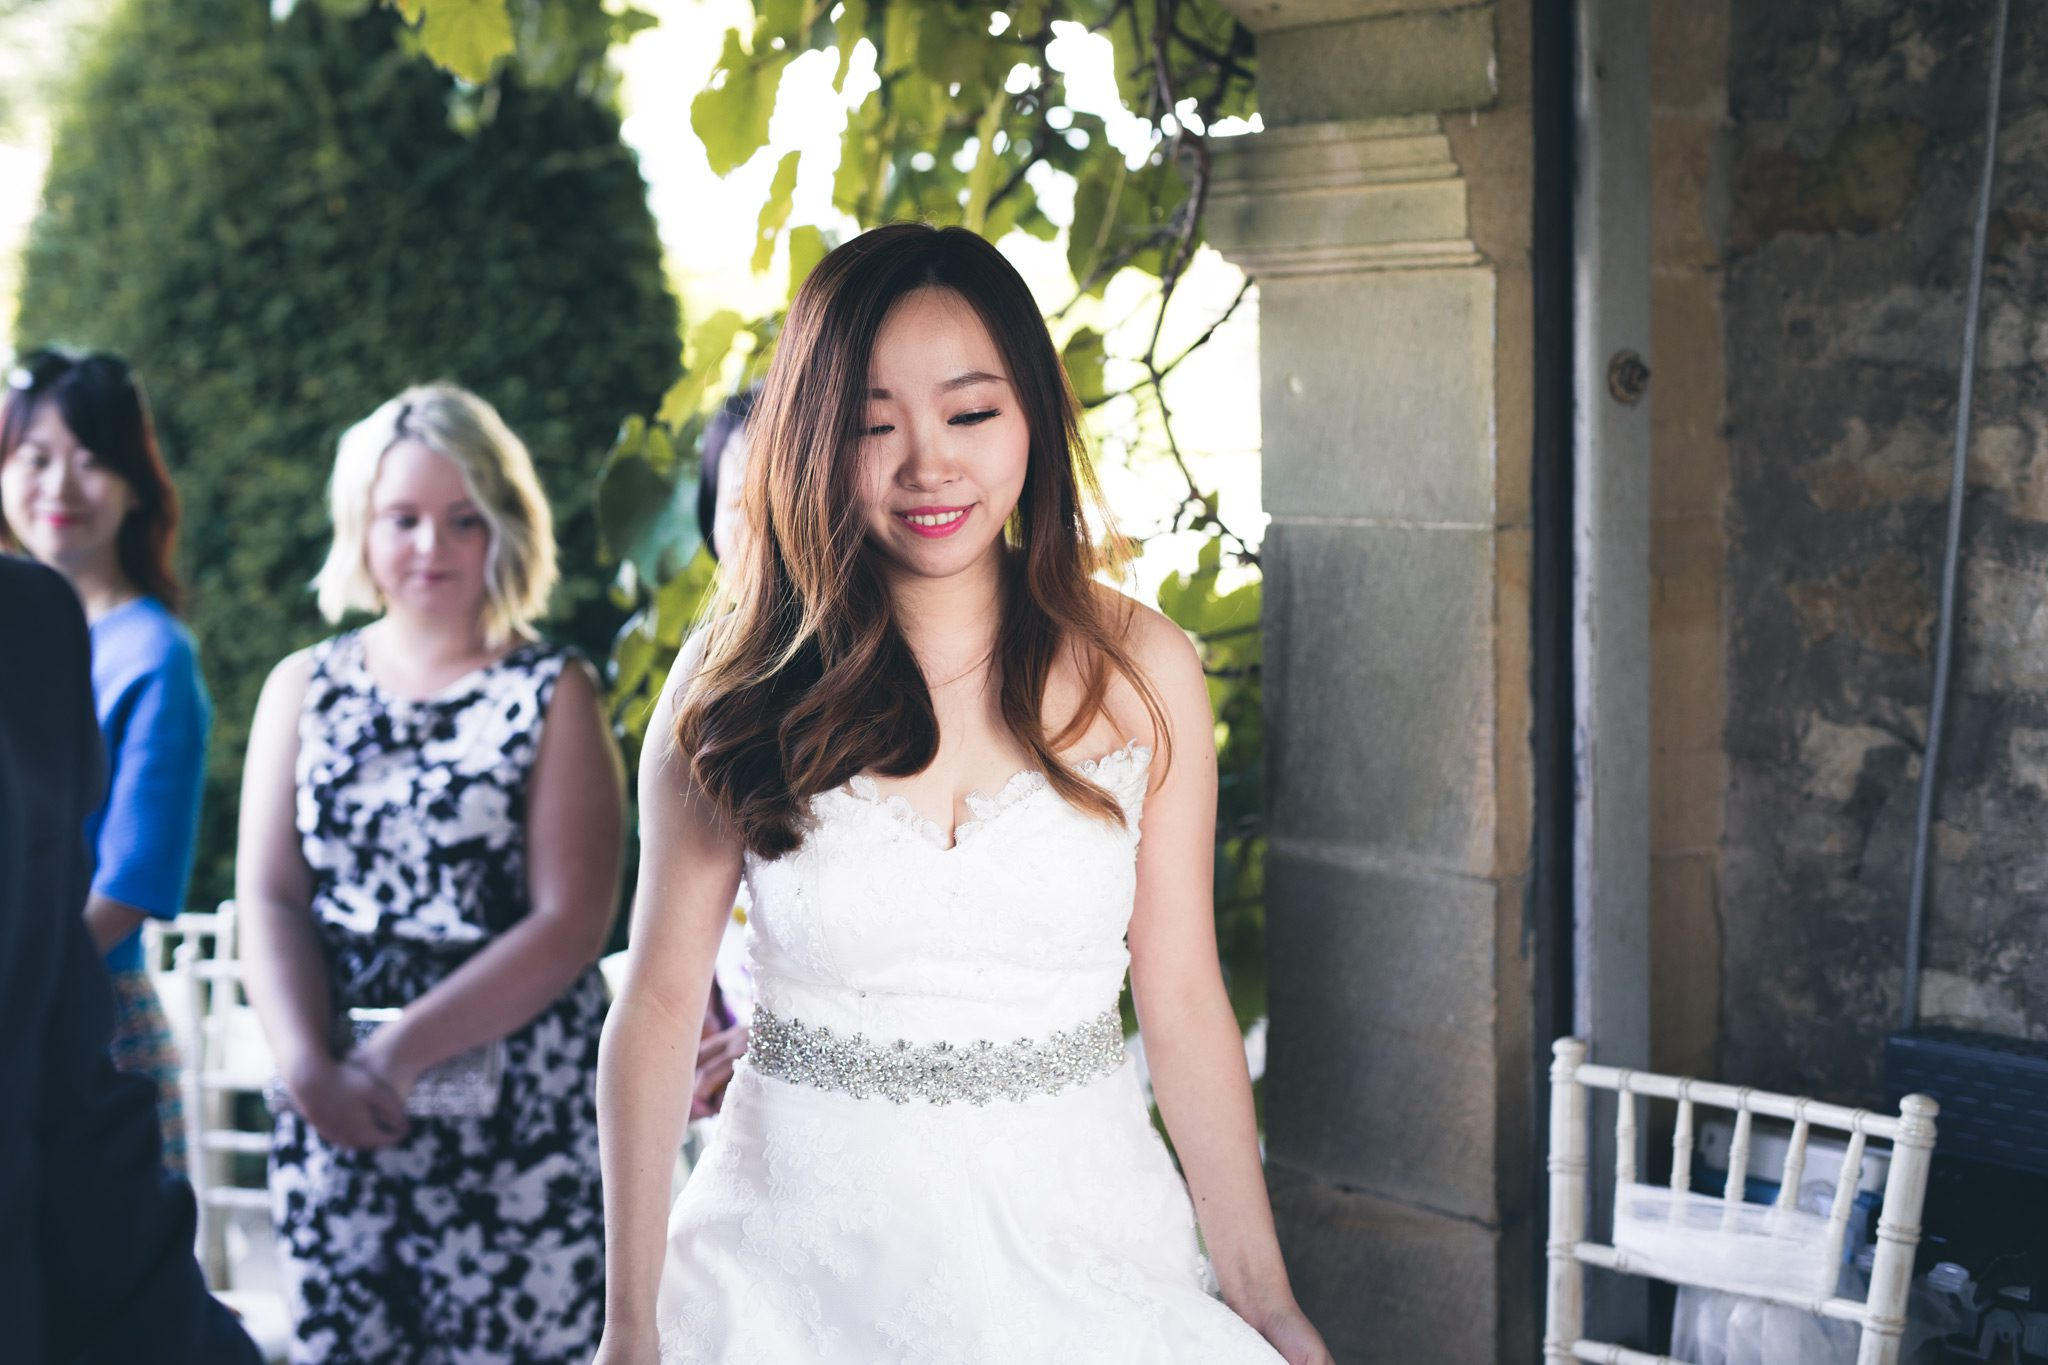 Summer Wedding at Haddon Hall - Xianxi arriving to the service